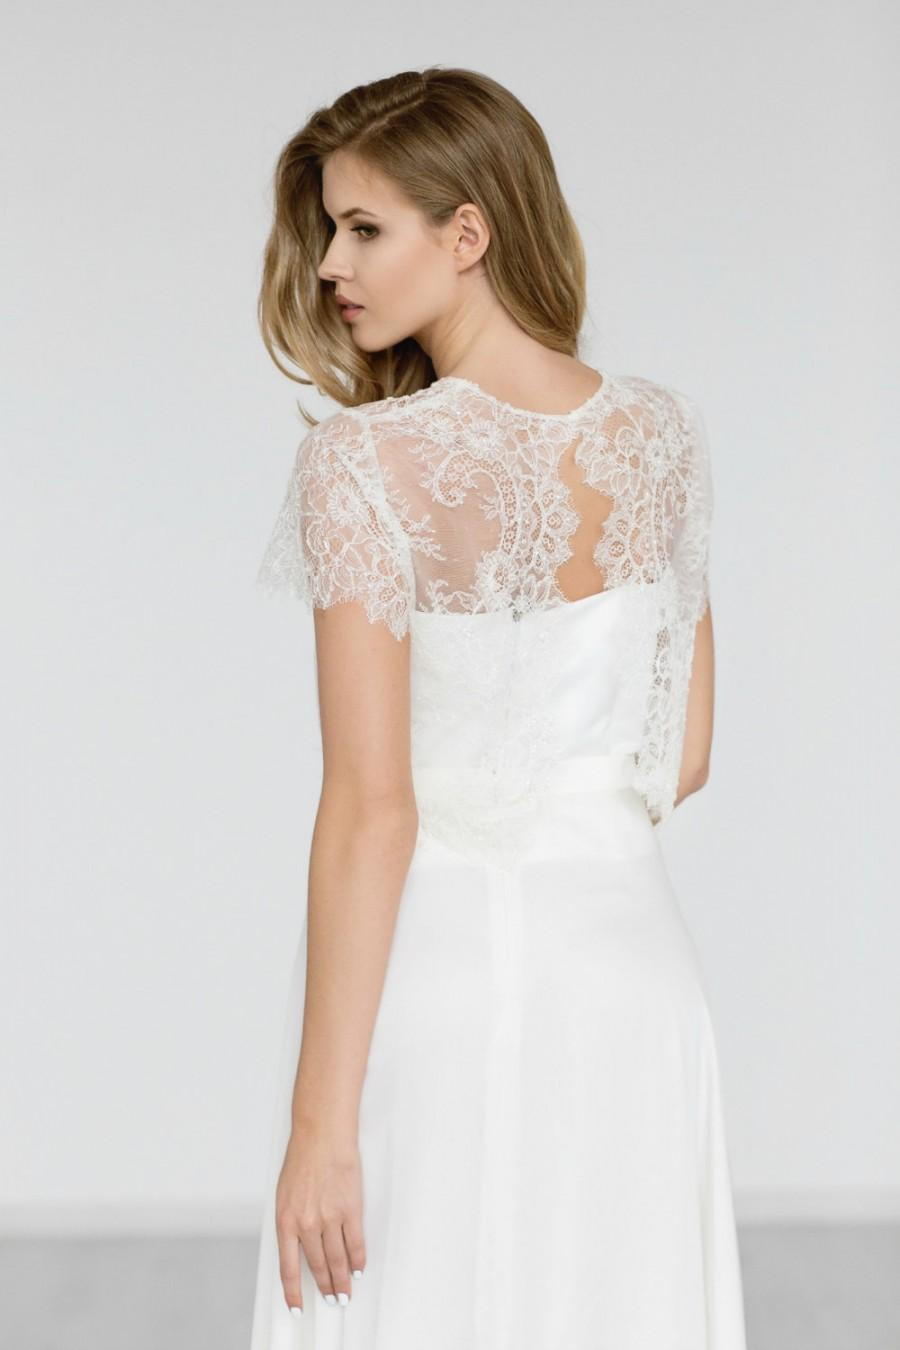 Bridal Lace Top Bridal Bolero Beaded Wedding Top